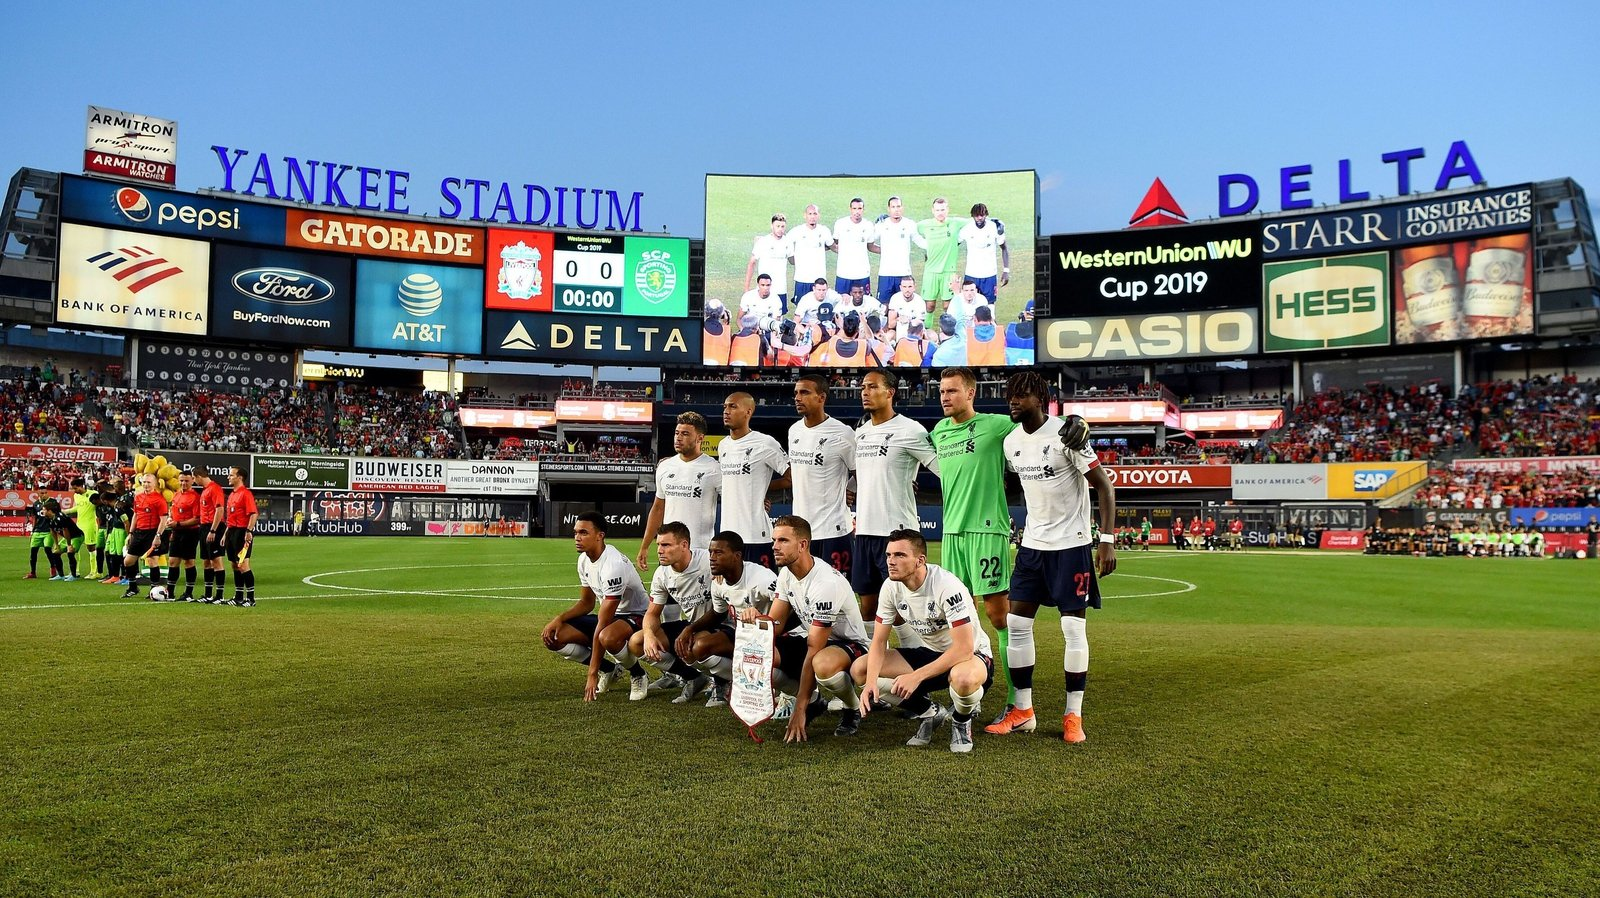 Liverpool sign off with Sporting draw at Yankee Stadium